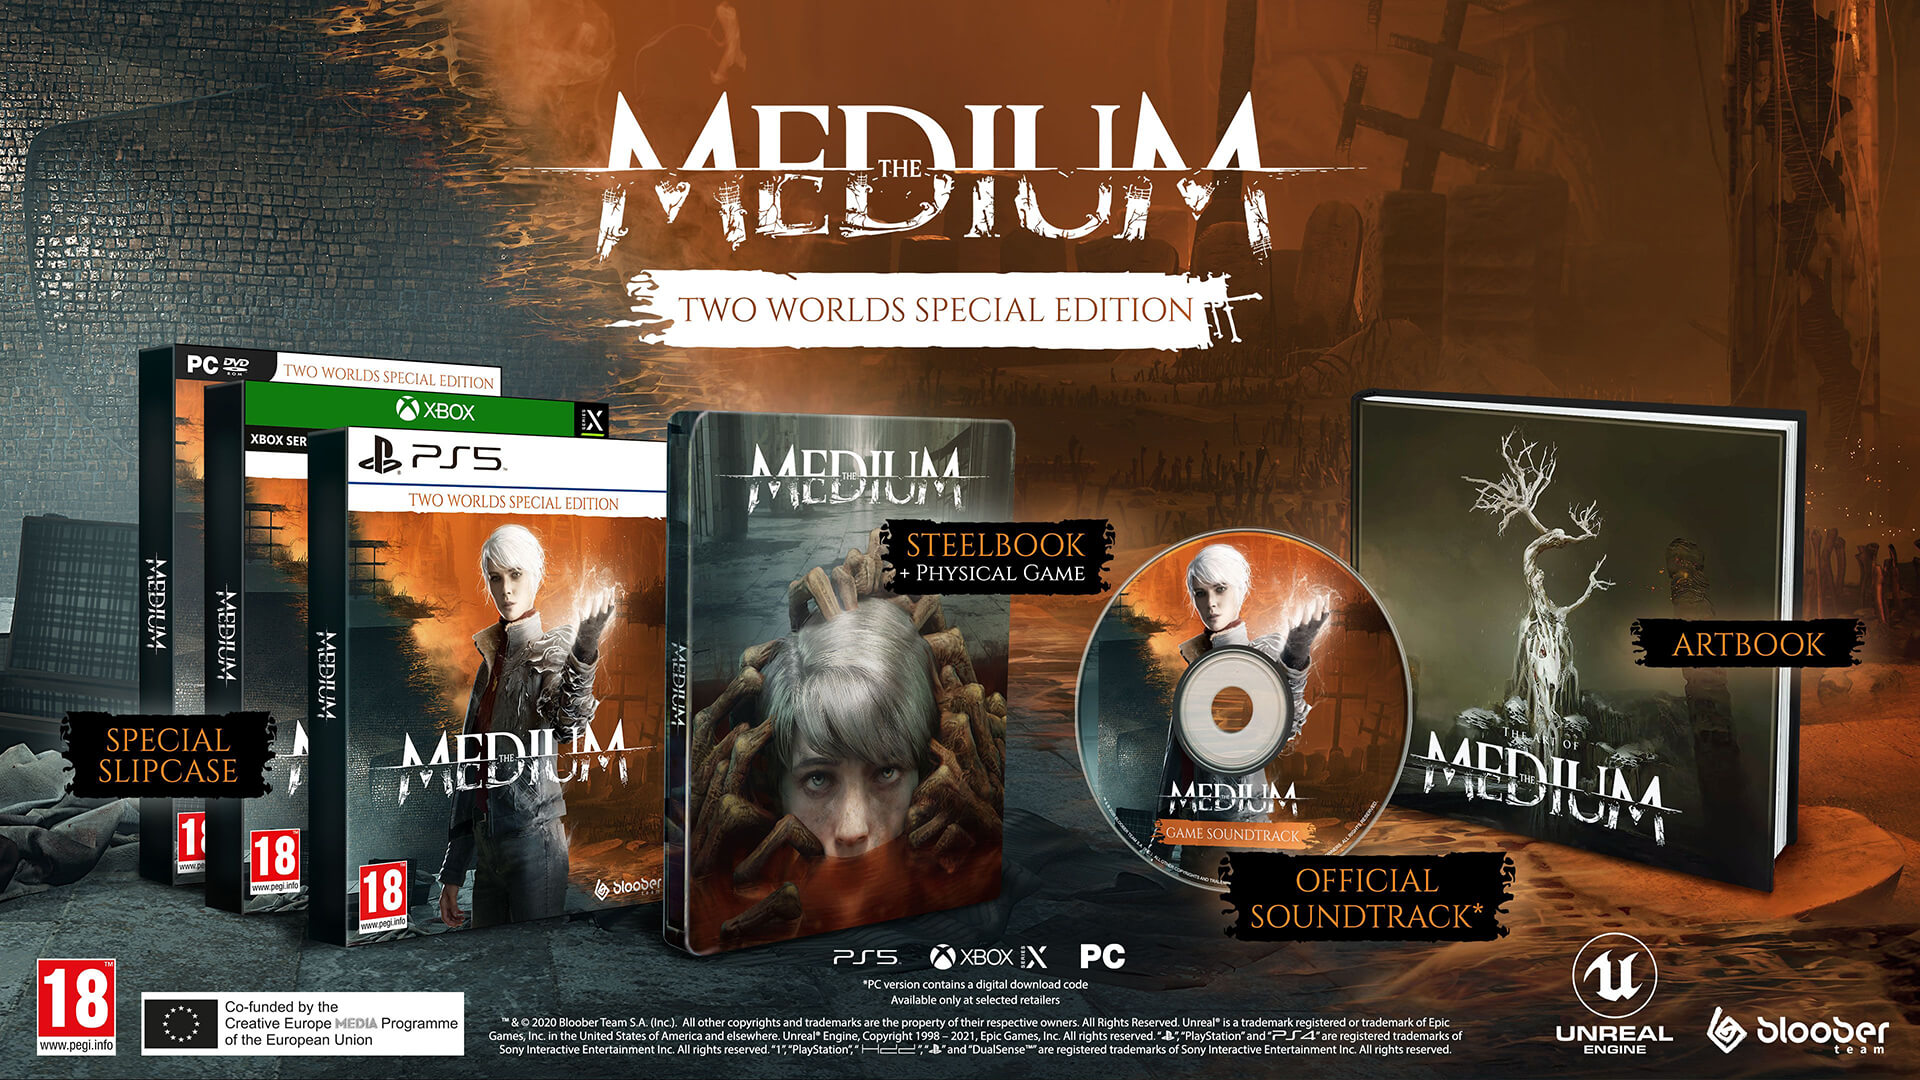 The Medium Two Worlds Special Edition